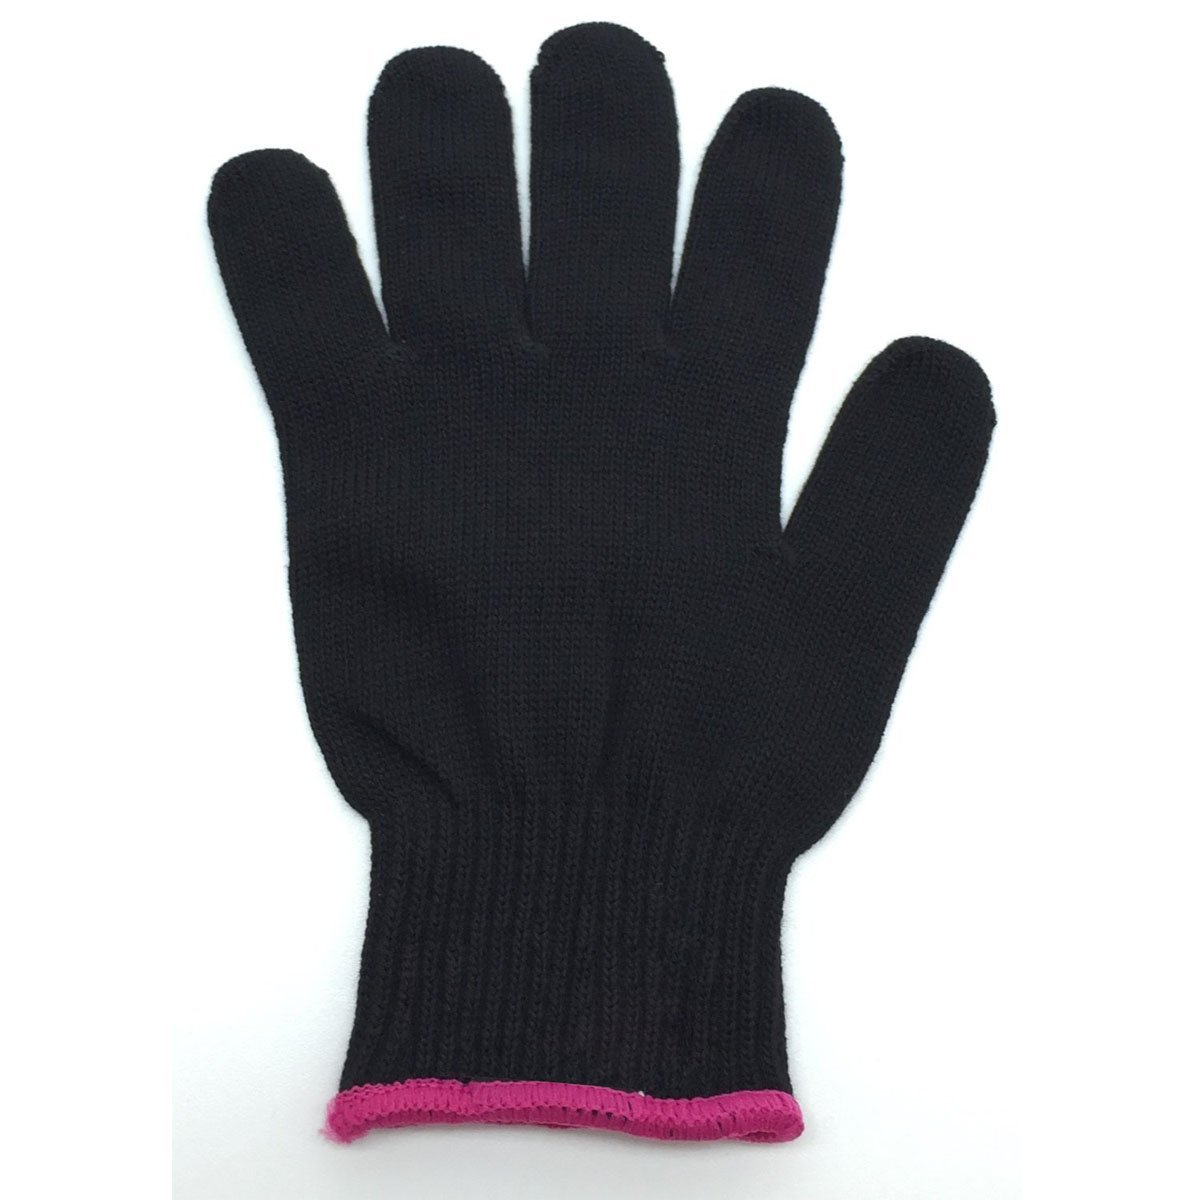 MYSWEETY Professional Heat Resistant Glove for Hair Styling Heat